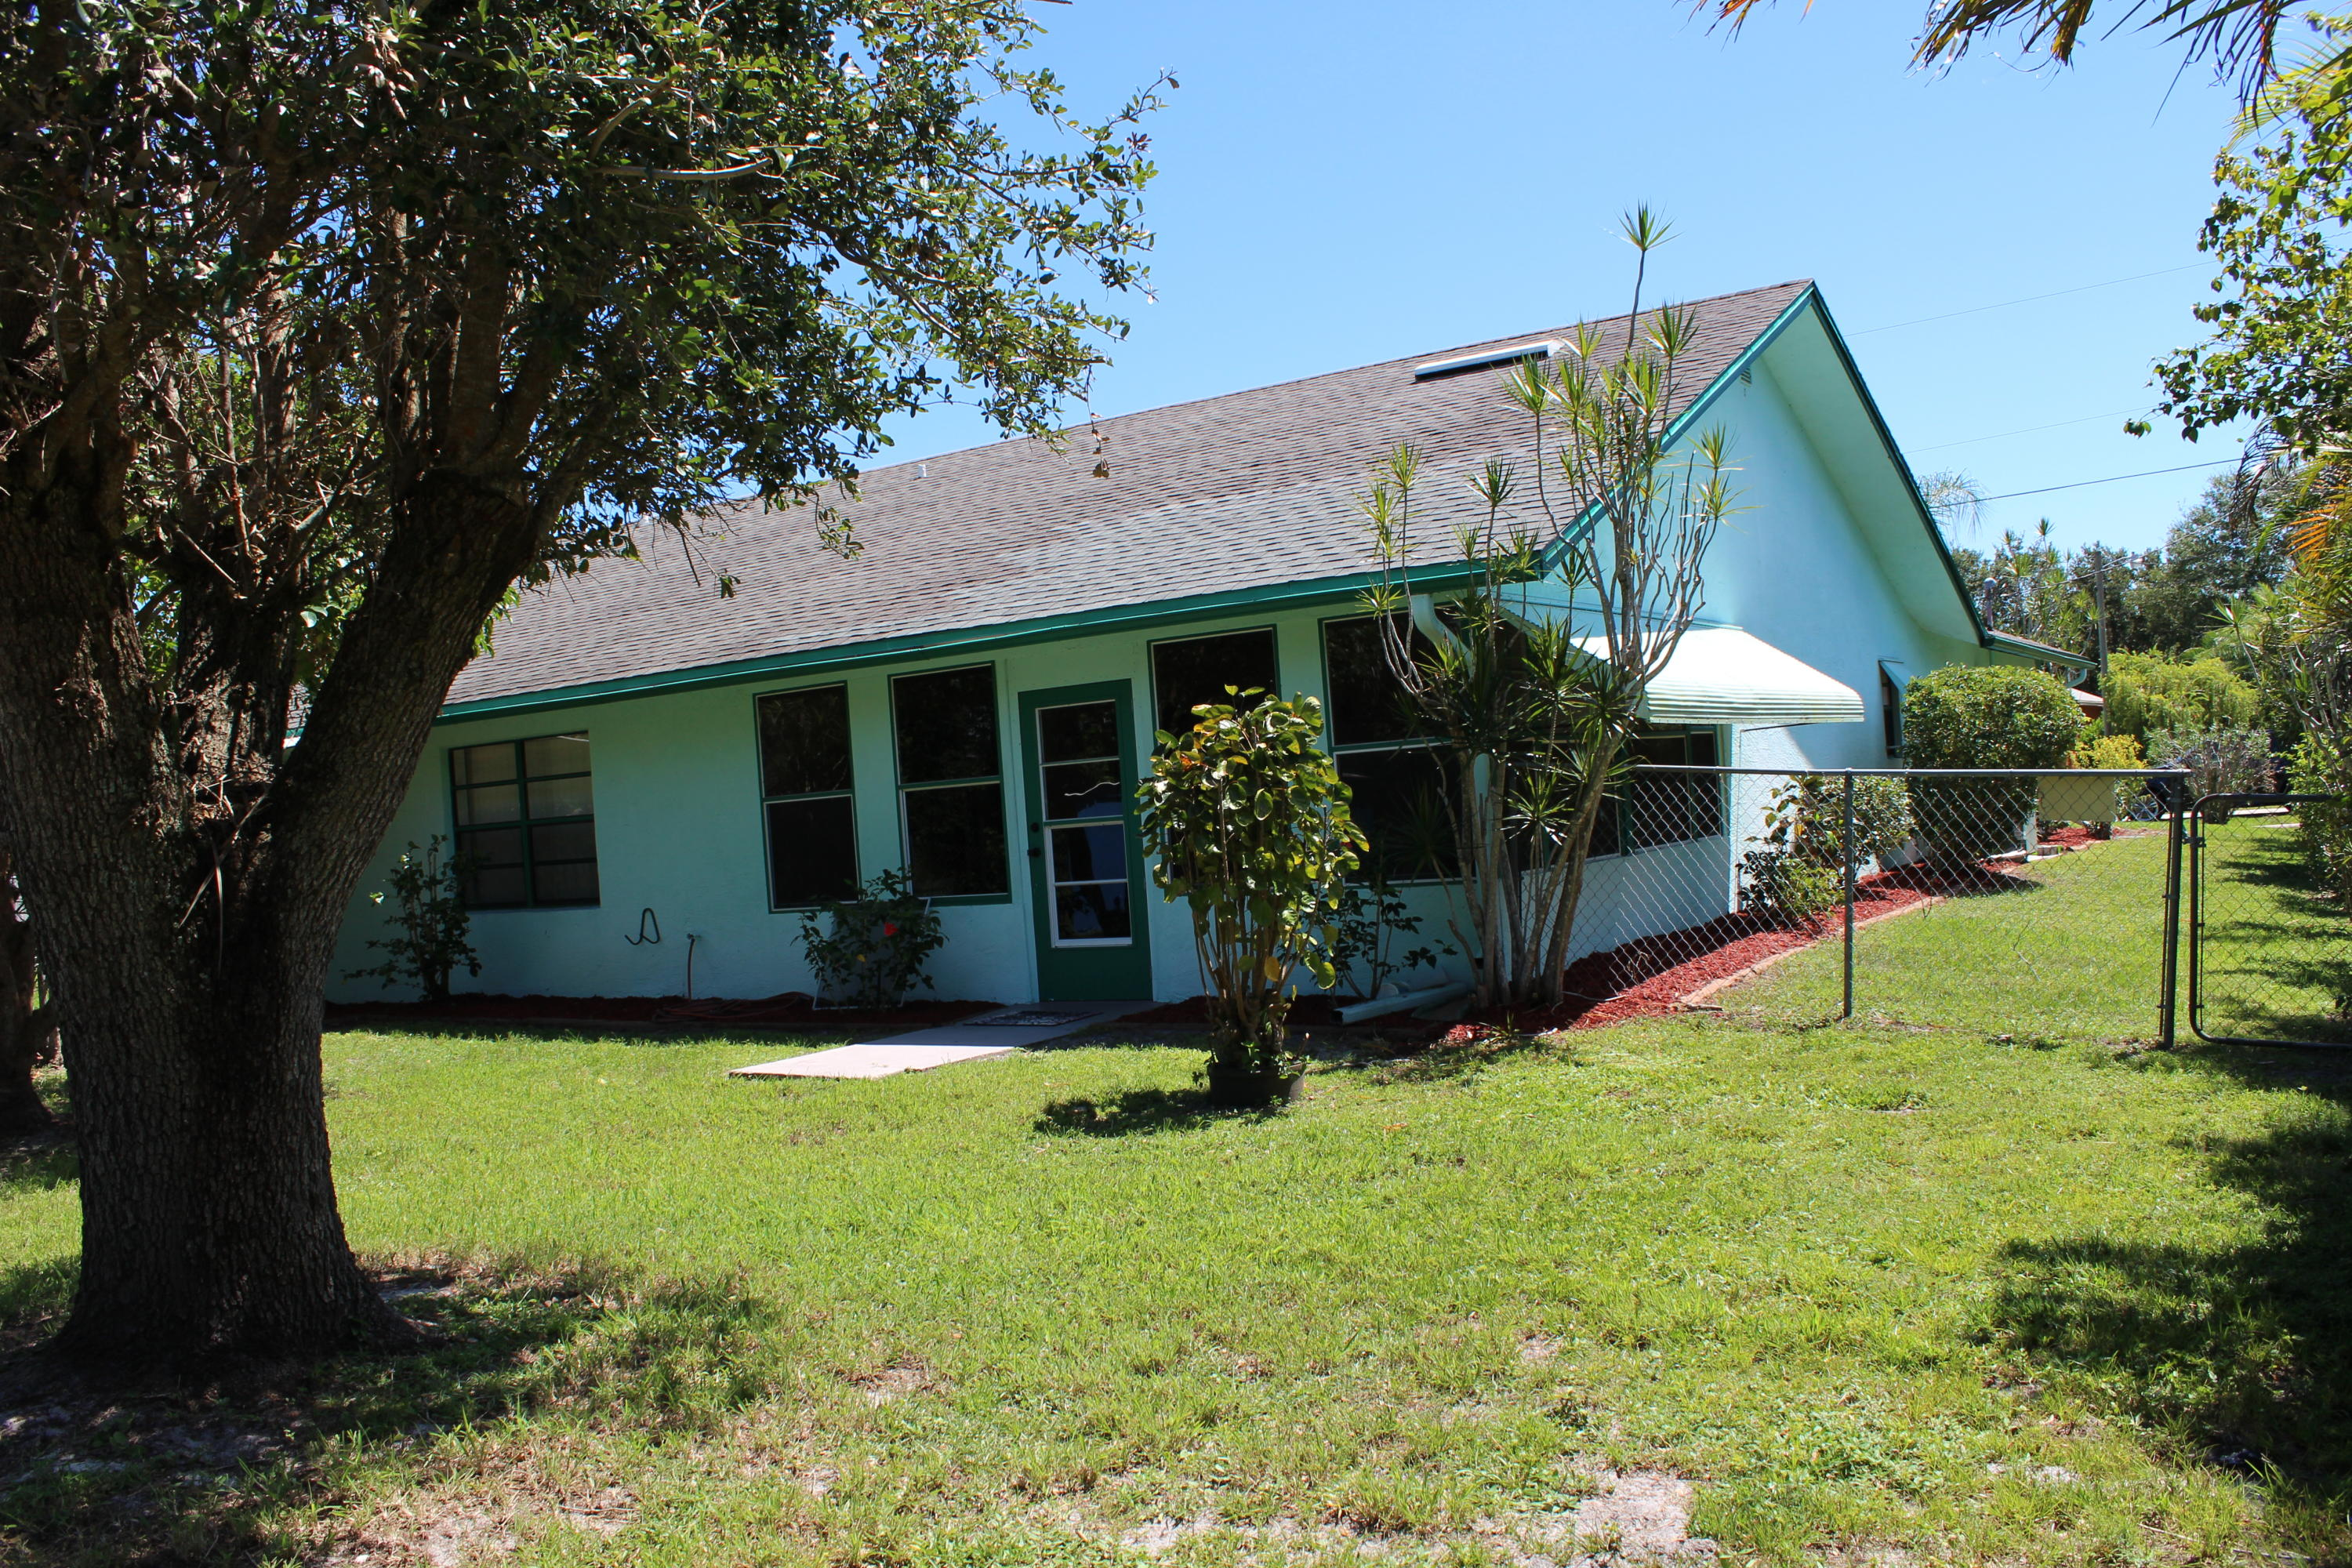 PORT ST LUCIE-SEC 30- BLK 1581 LOT 51 (MAP 45/07S) (OR 3858-1034)